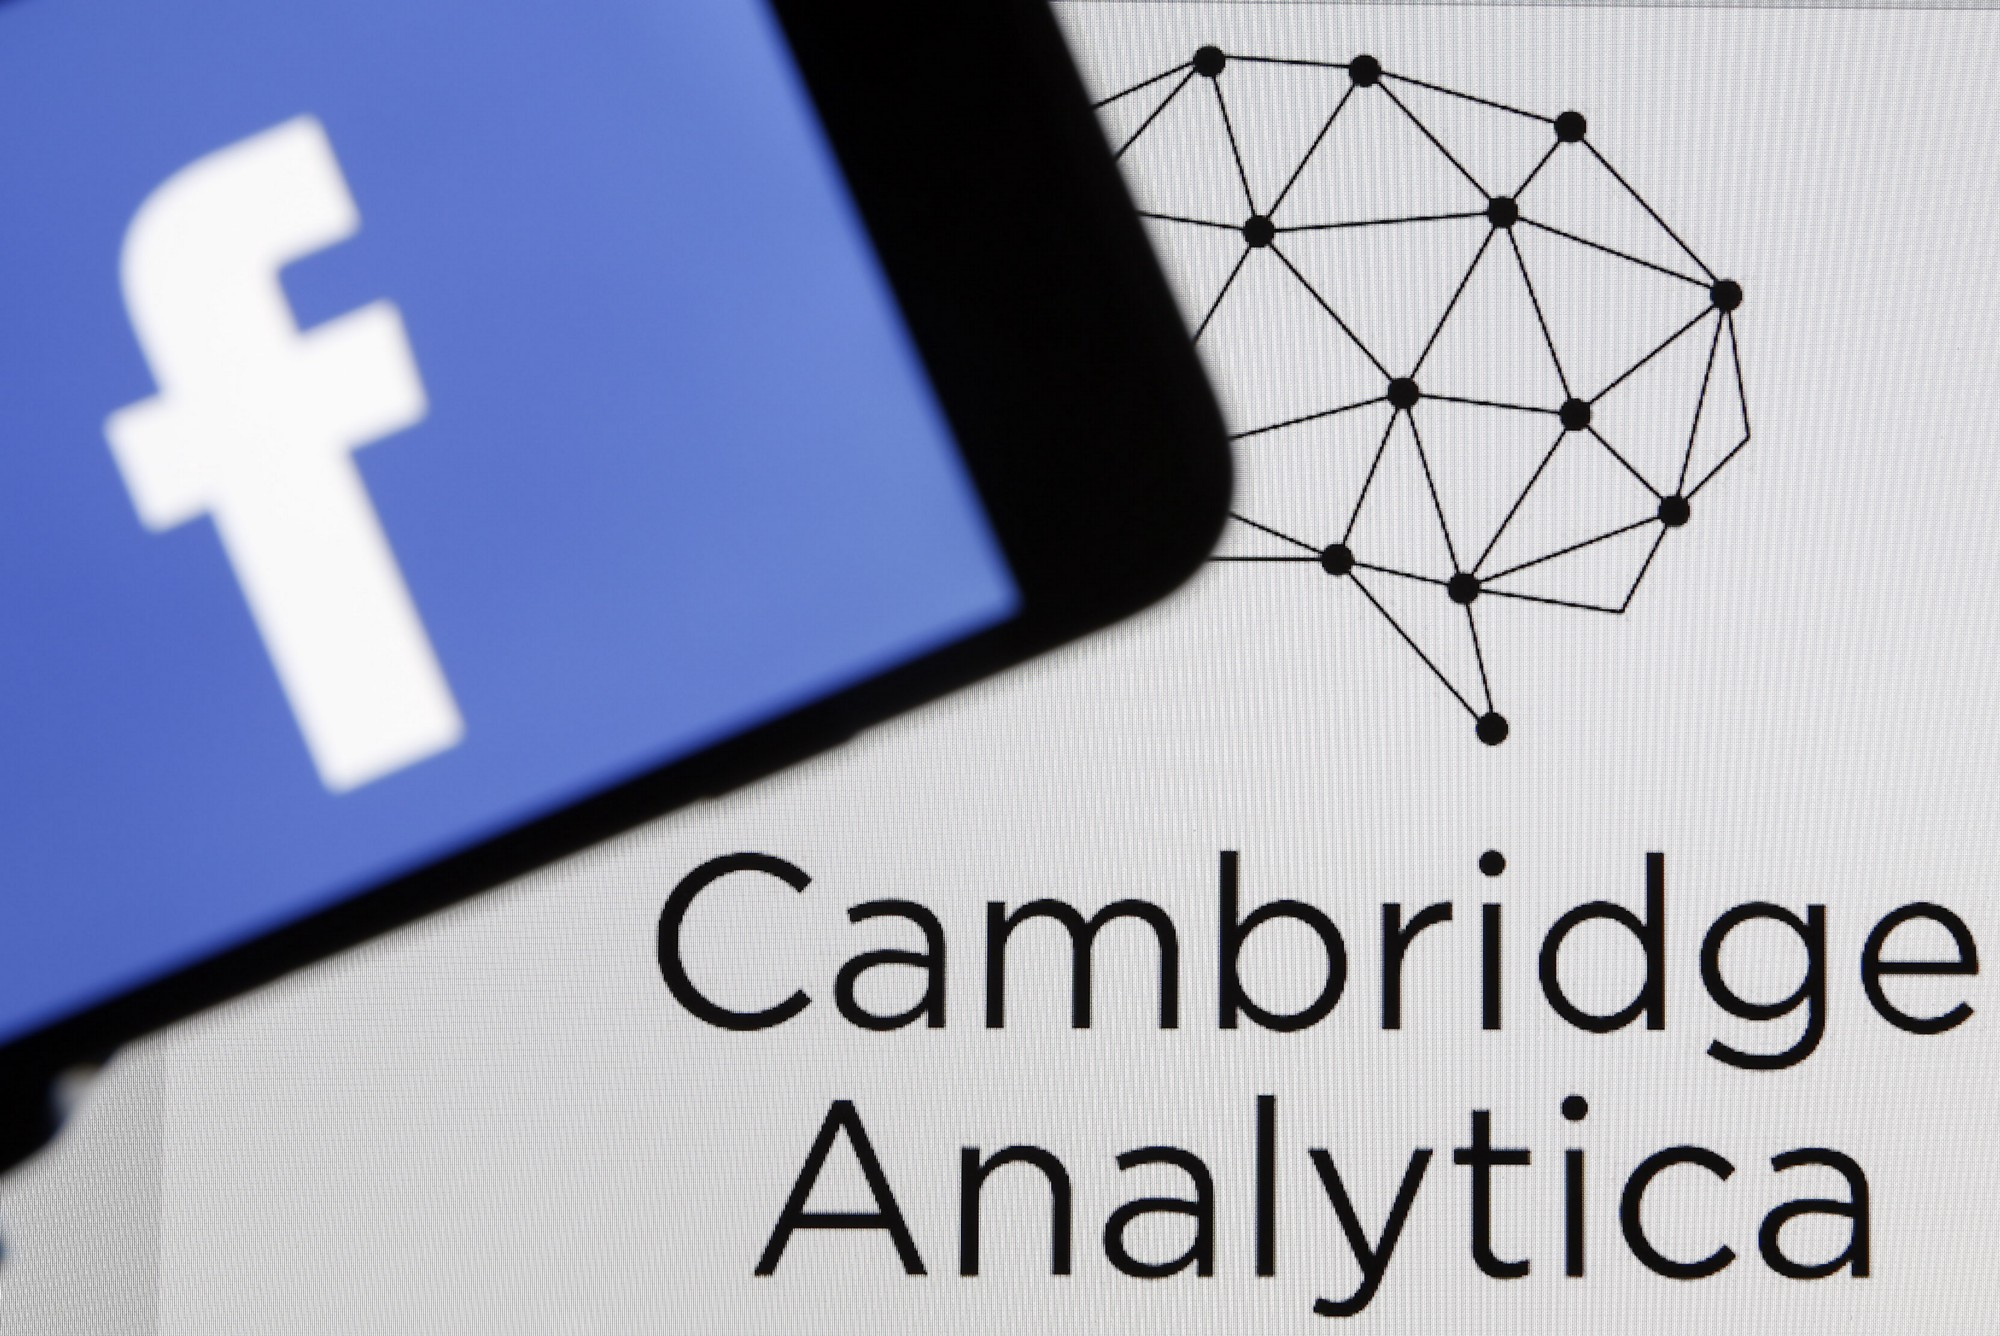 sursa imaginii https://medium.com/@PatrickRuffini/the-medias-double-standard-on-privacy-and-cambridge-analytica-1e37ef0649da